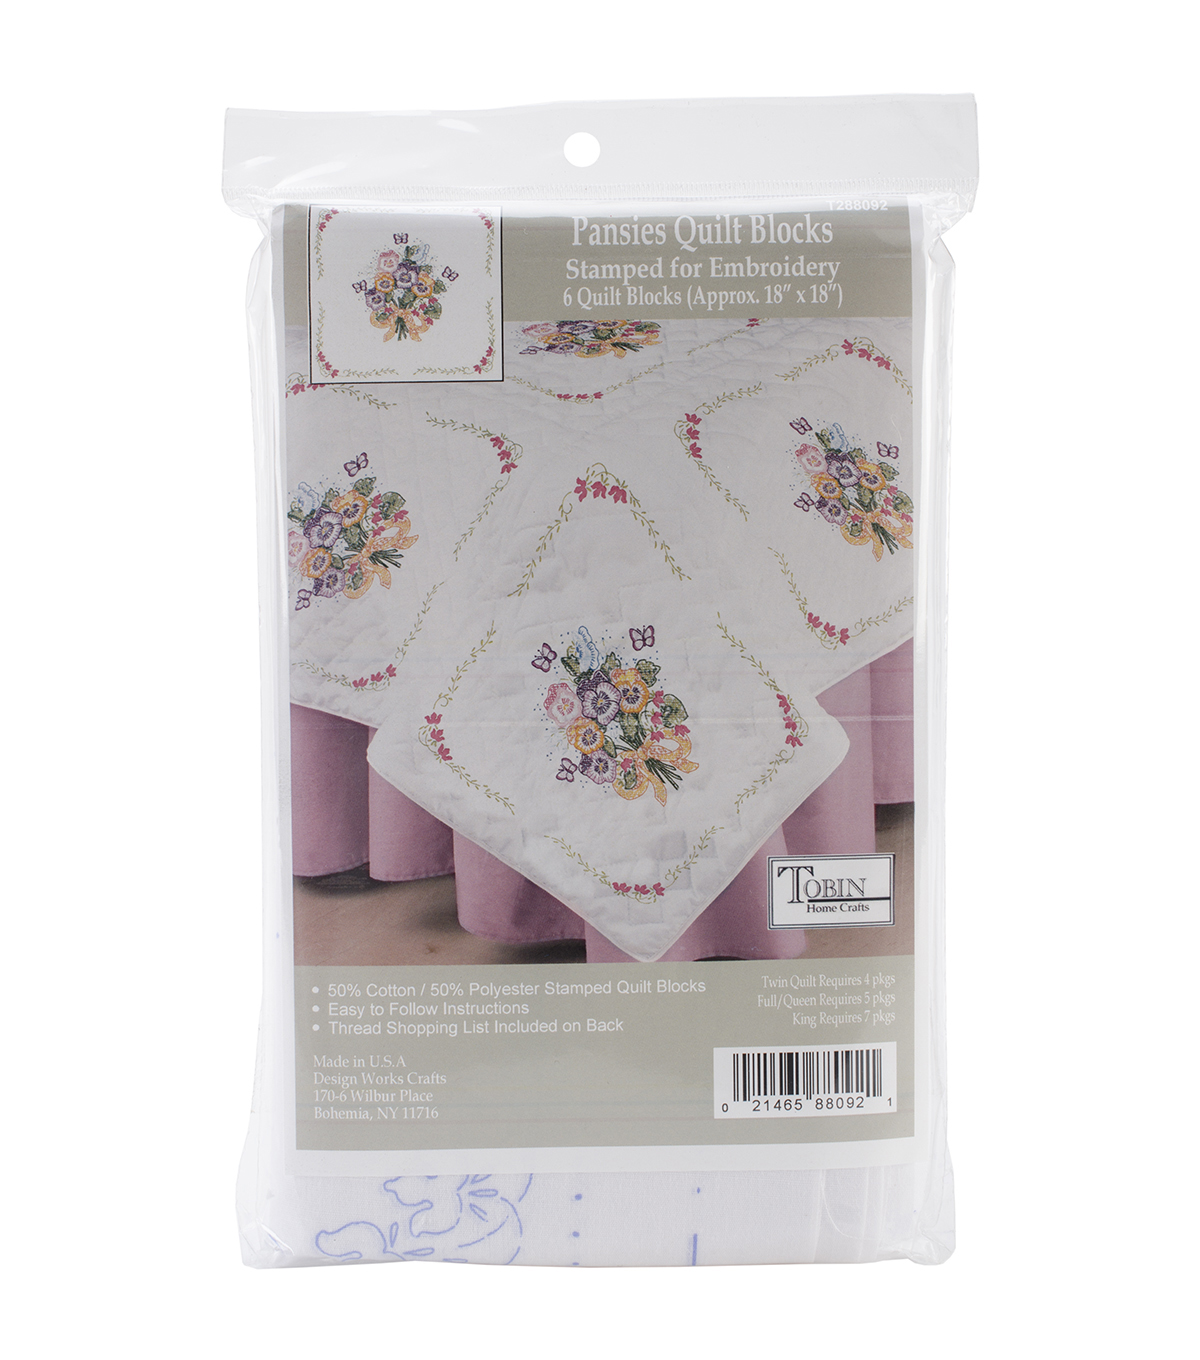 Tobin Stamped Pansies White Quilt Blocks